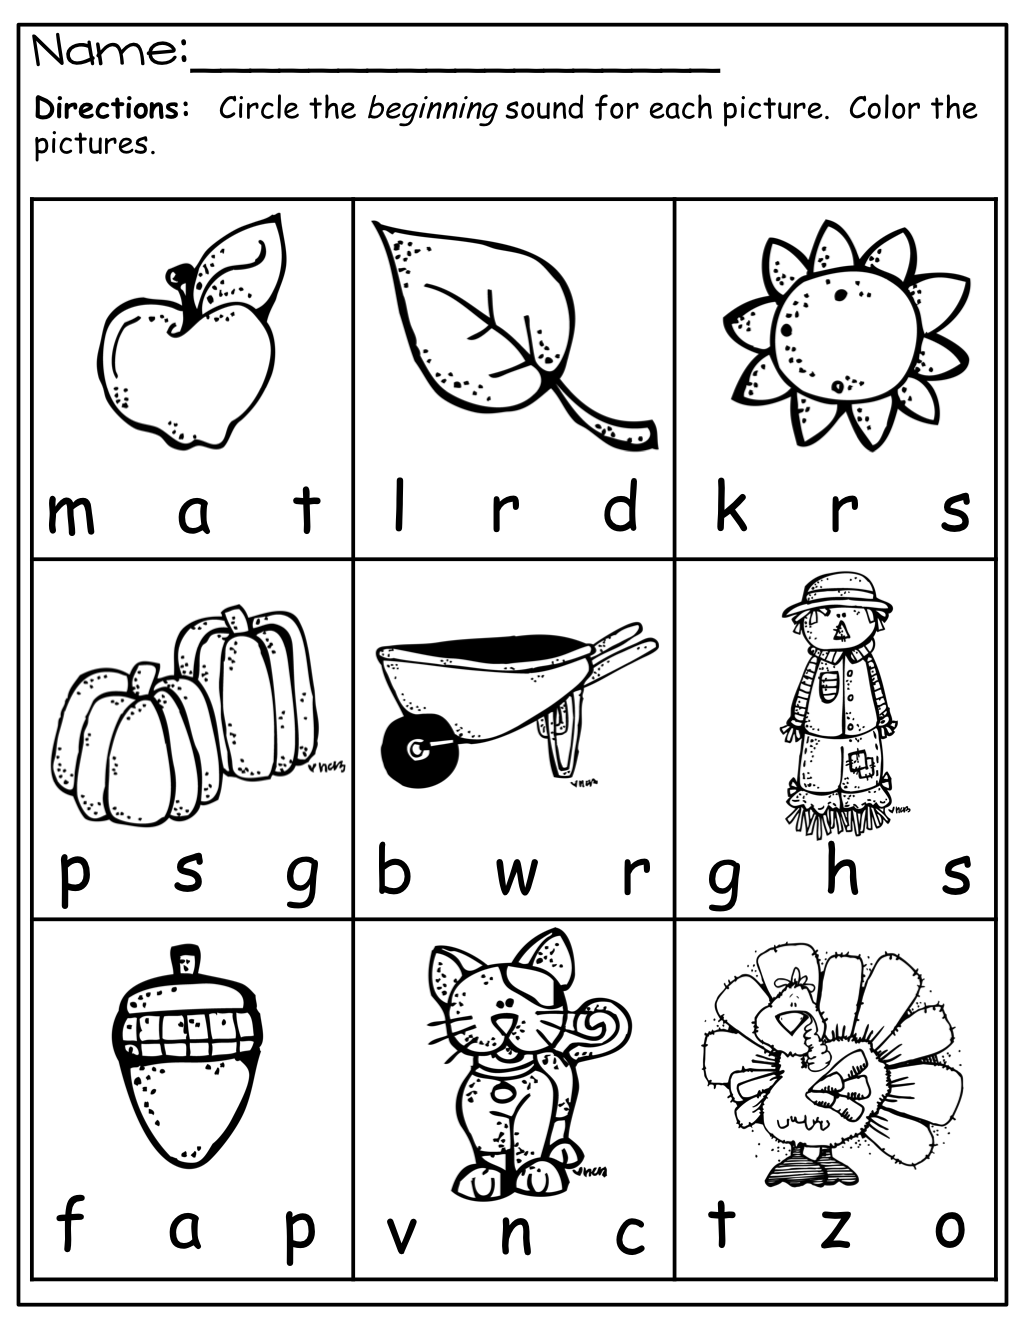 Free Worksheet Initial Sound Worksheets 17 best images about beginning sound worksheets on pinterest initial sounds preschool and literacy